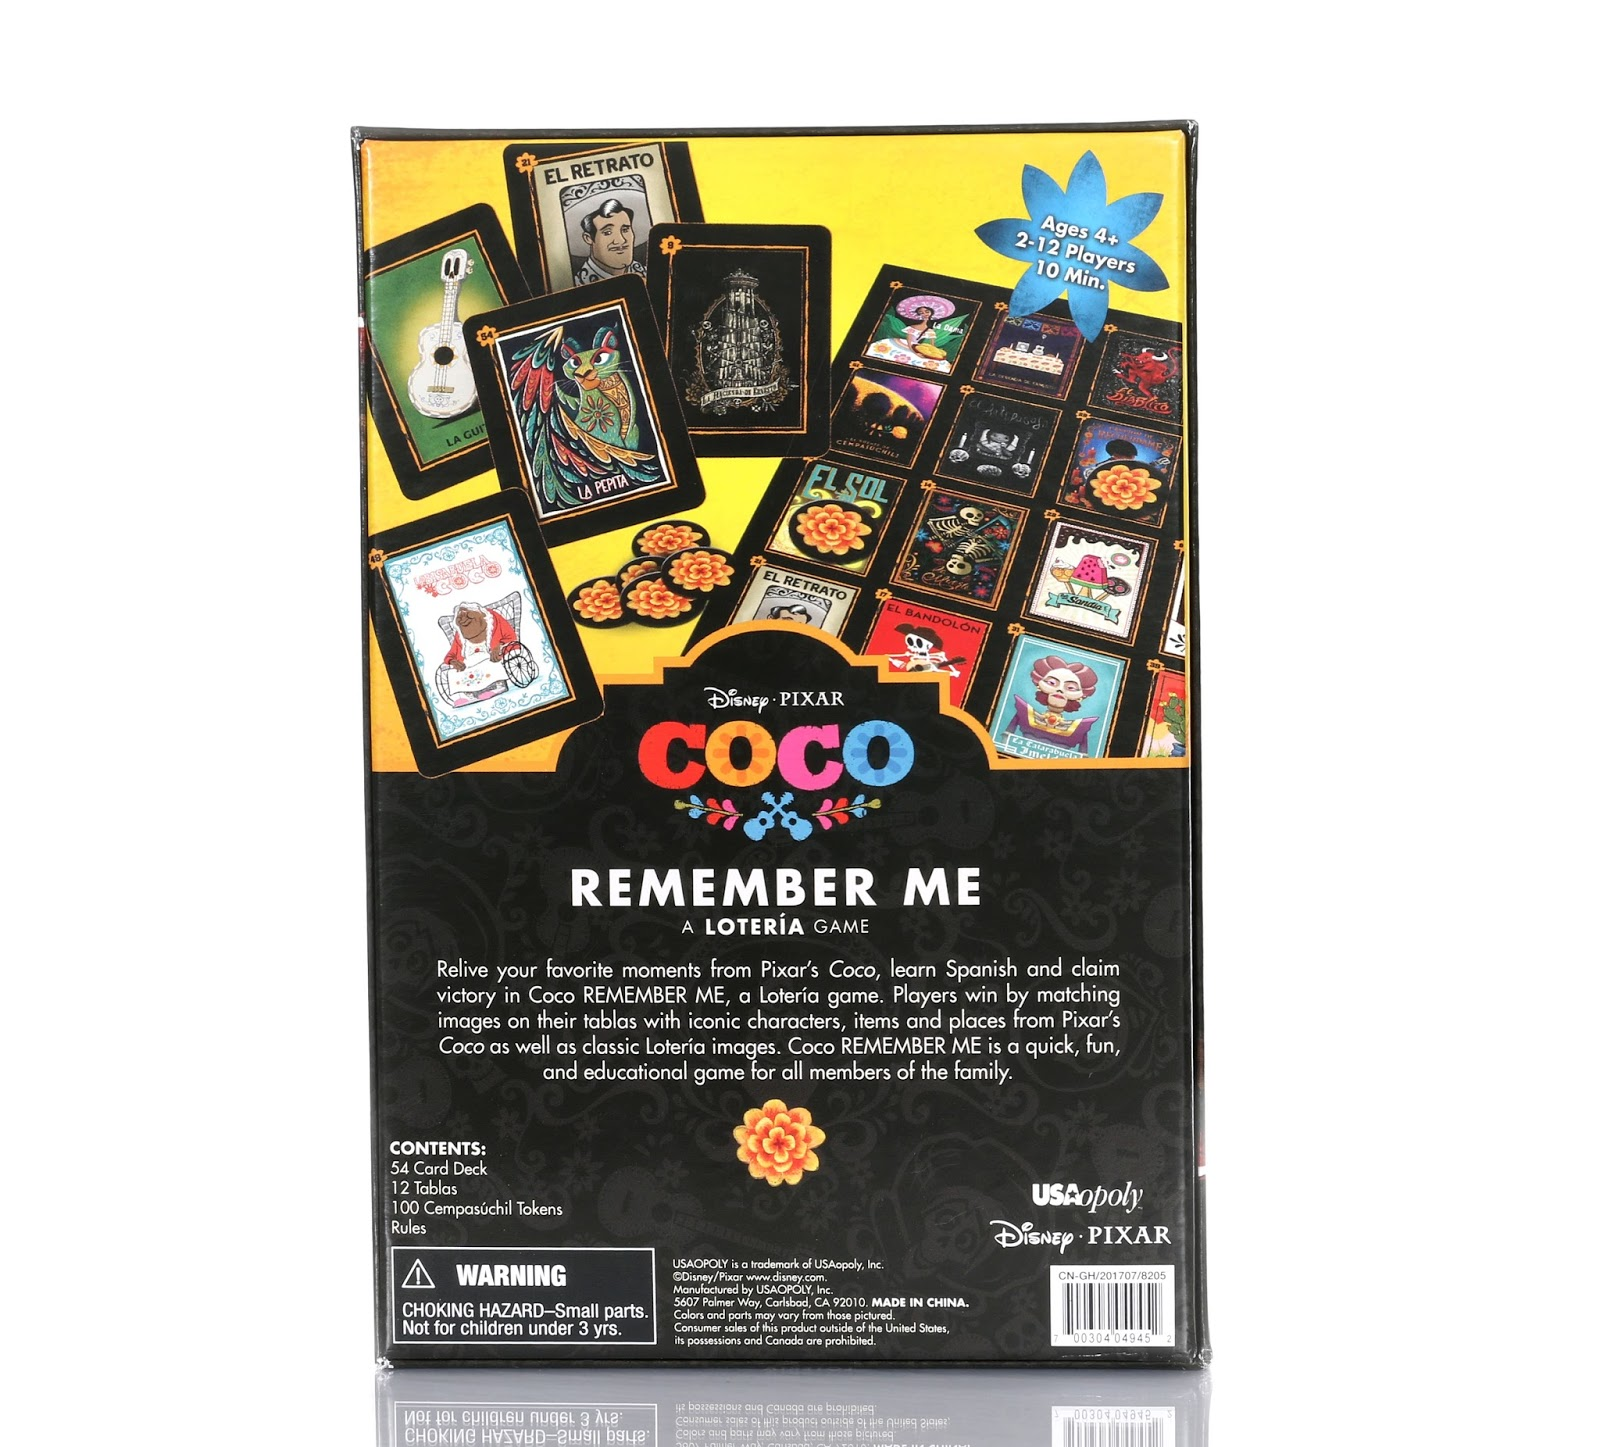 Coco Loteria Mexican Bingo Game Review